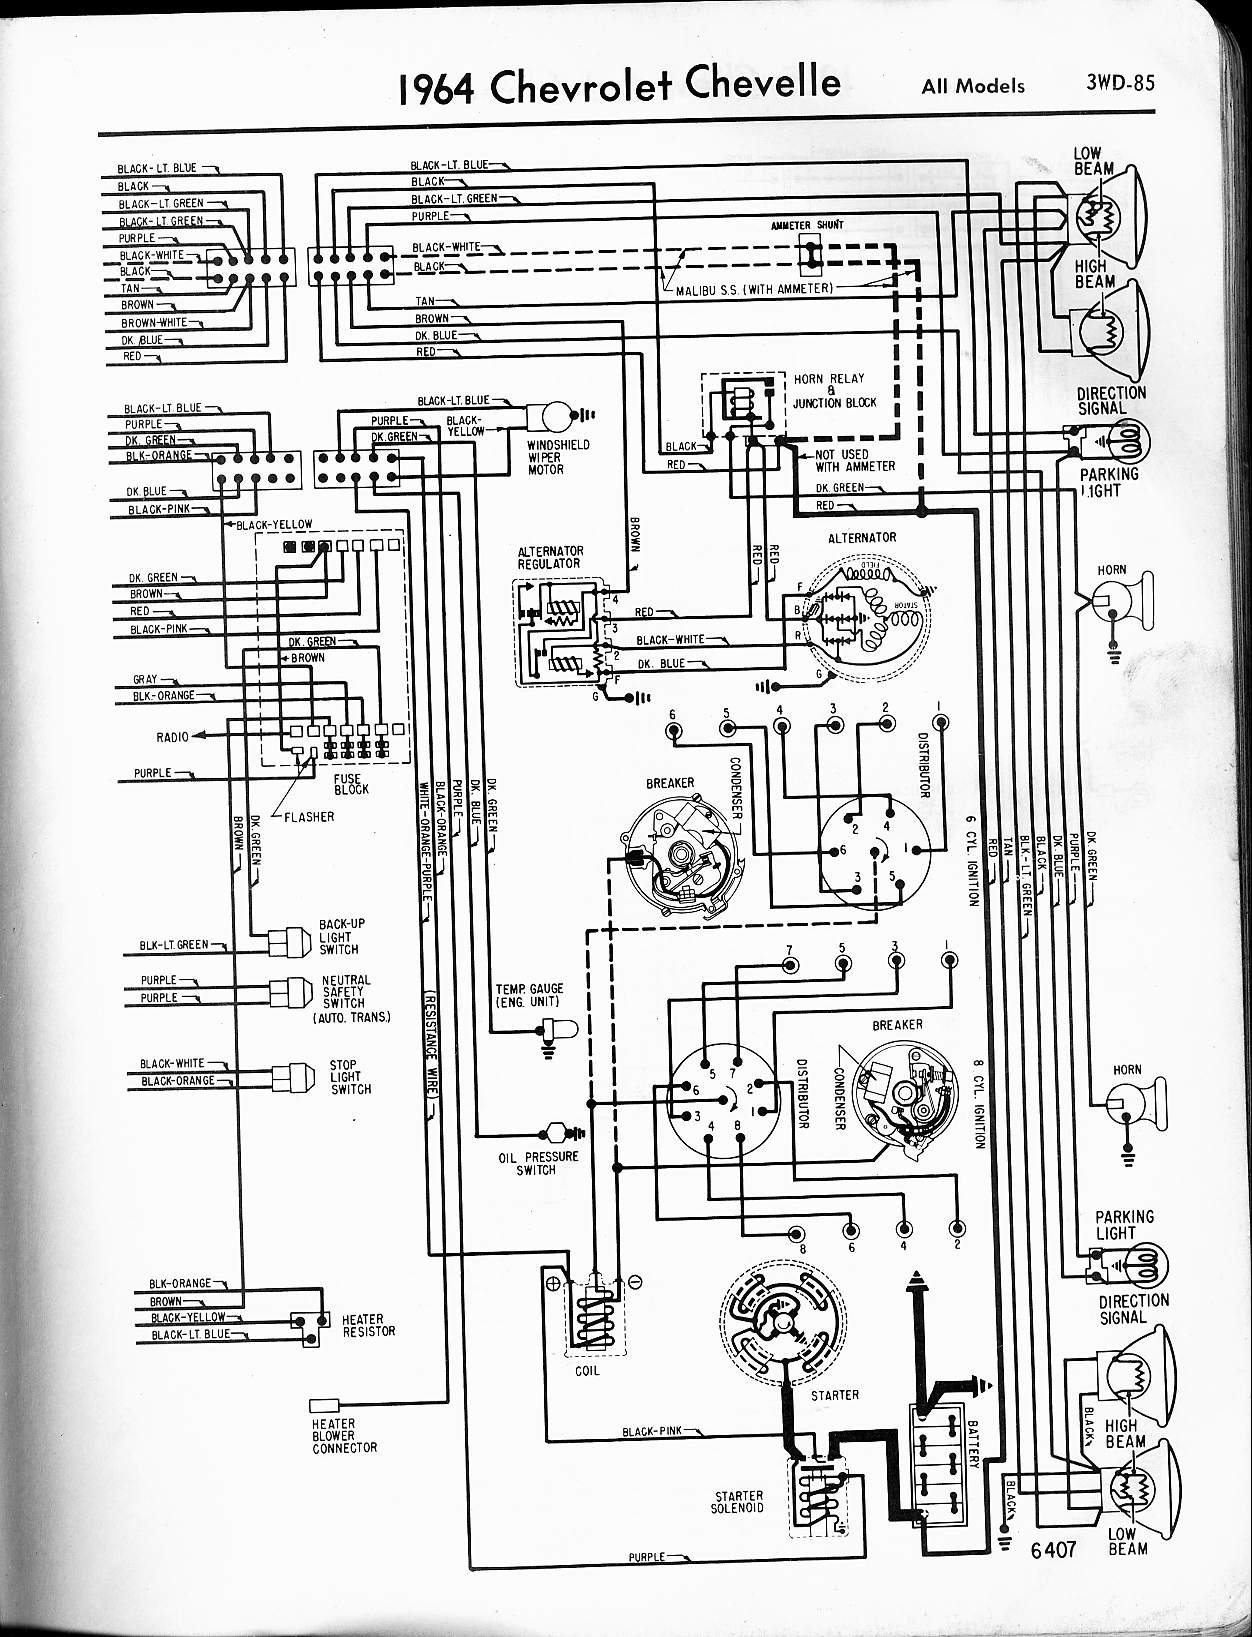 1968 Impala Wiring Diagram Lights Simple Wiring Diagram CruiseControl 2003  Impala Electrical Diagram 1968 Chevy Impala Wiring Diagram